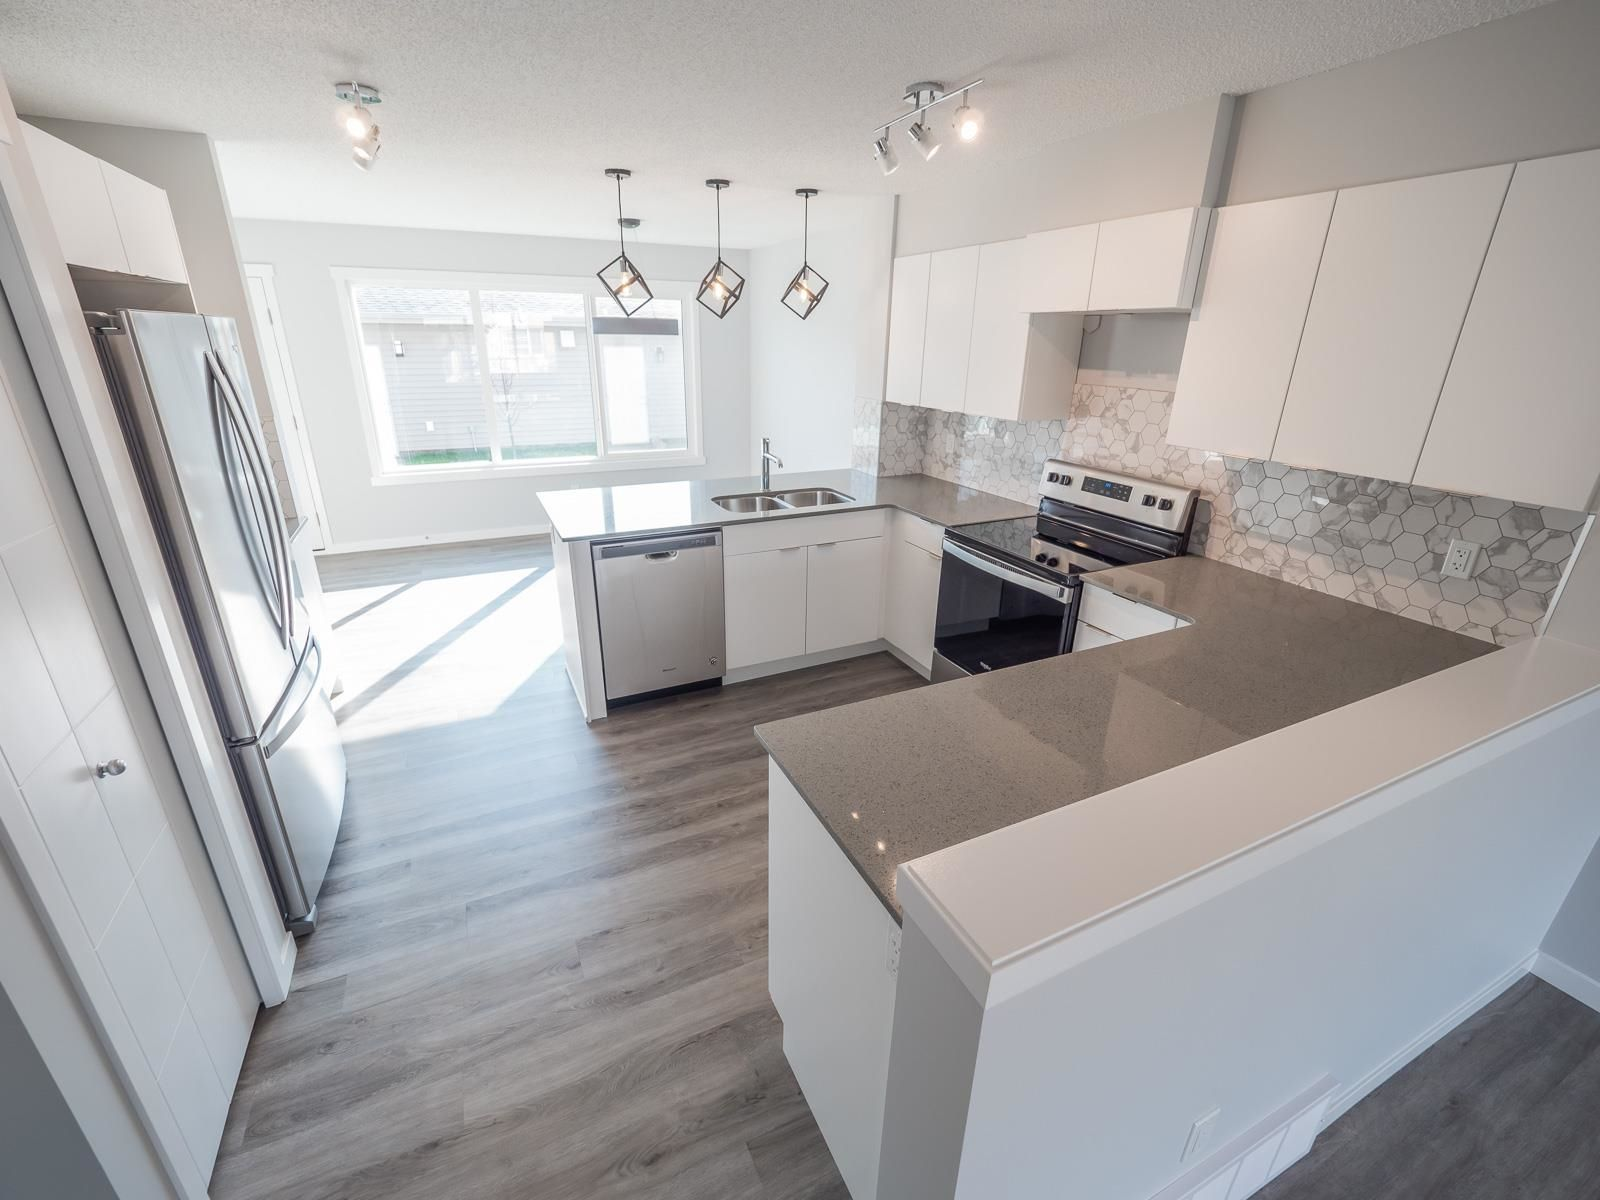 Main Photo: 2613 201 Street in Edmonton: Zone 57 Attached Home for sale : MLS®# E4262204